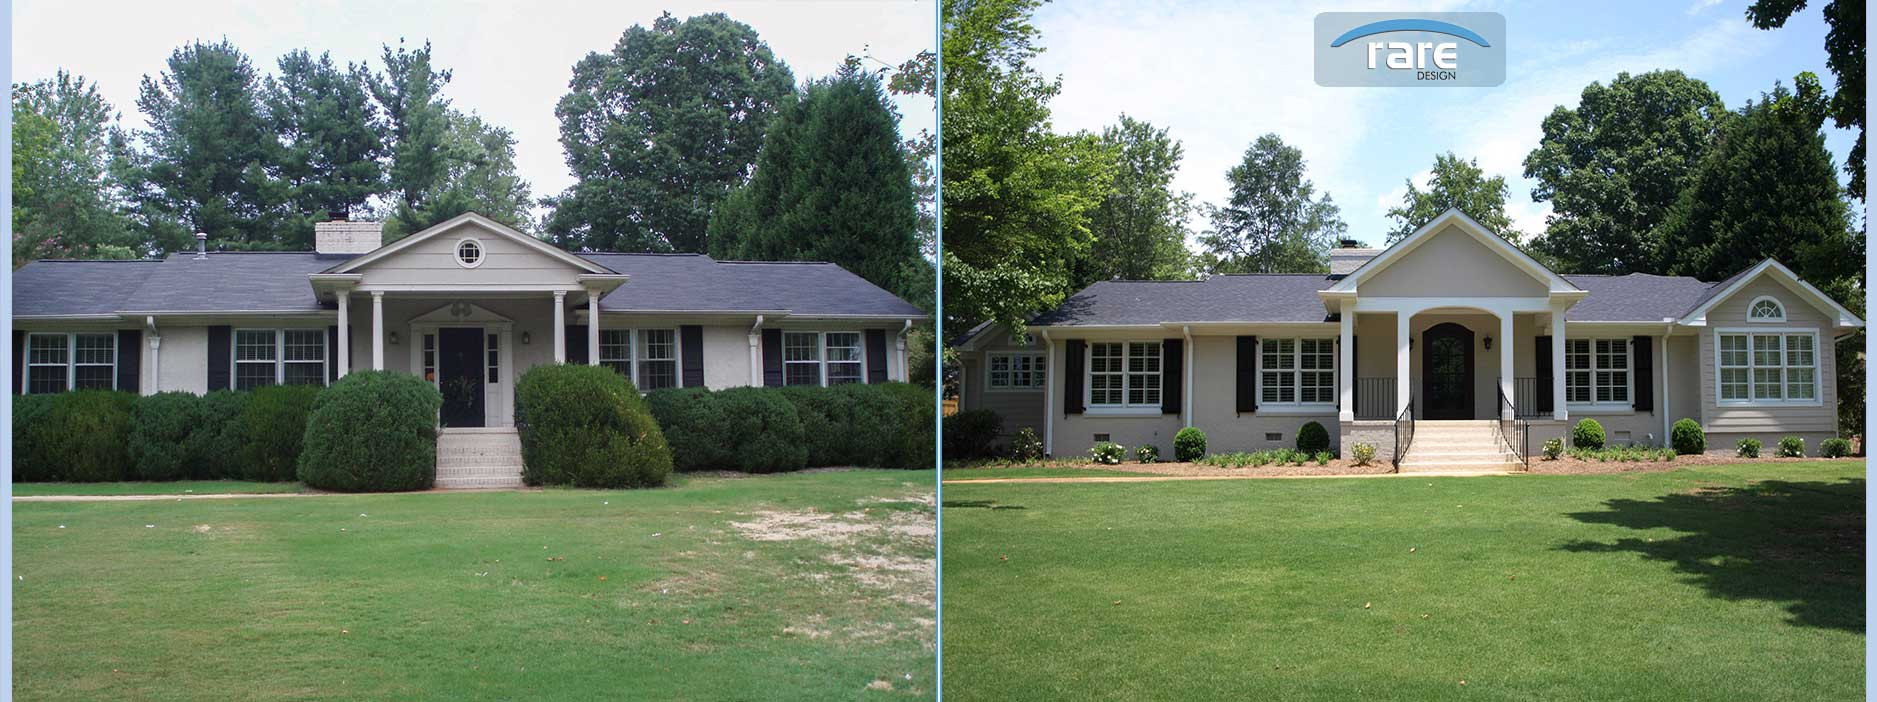 Greenville home remodeling raredesign inc for Redesign the outside of your home